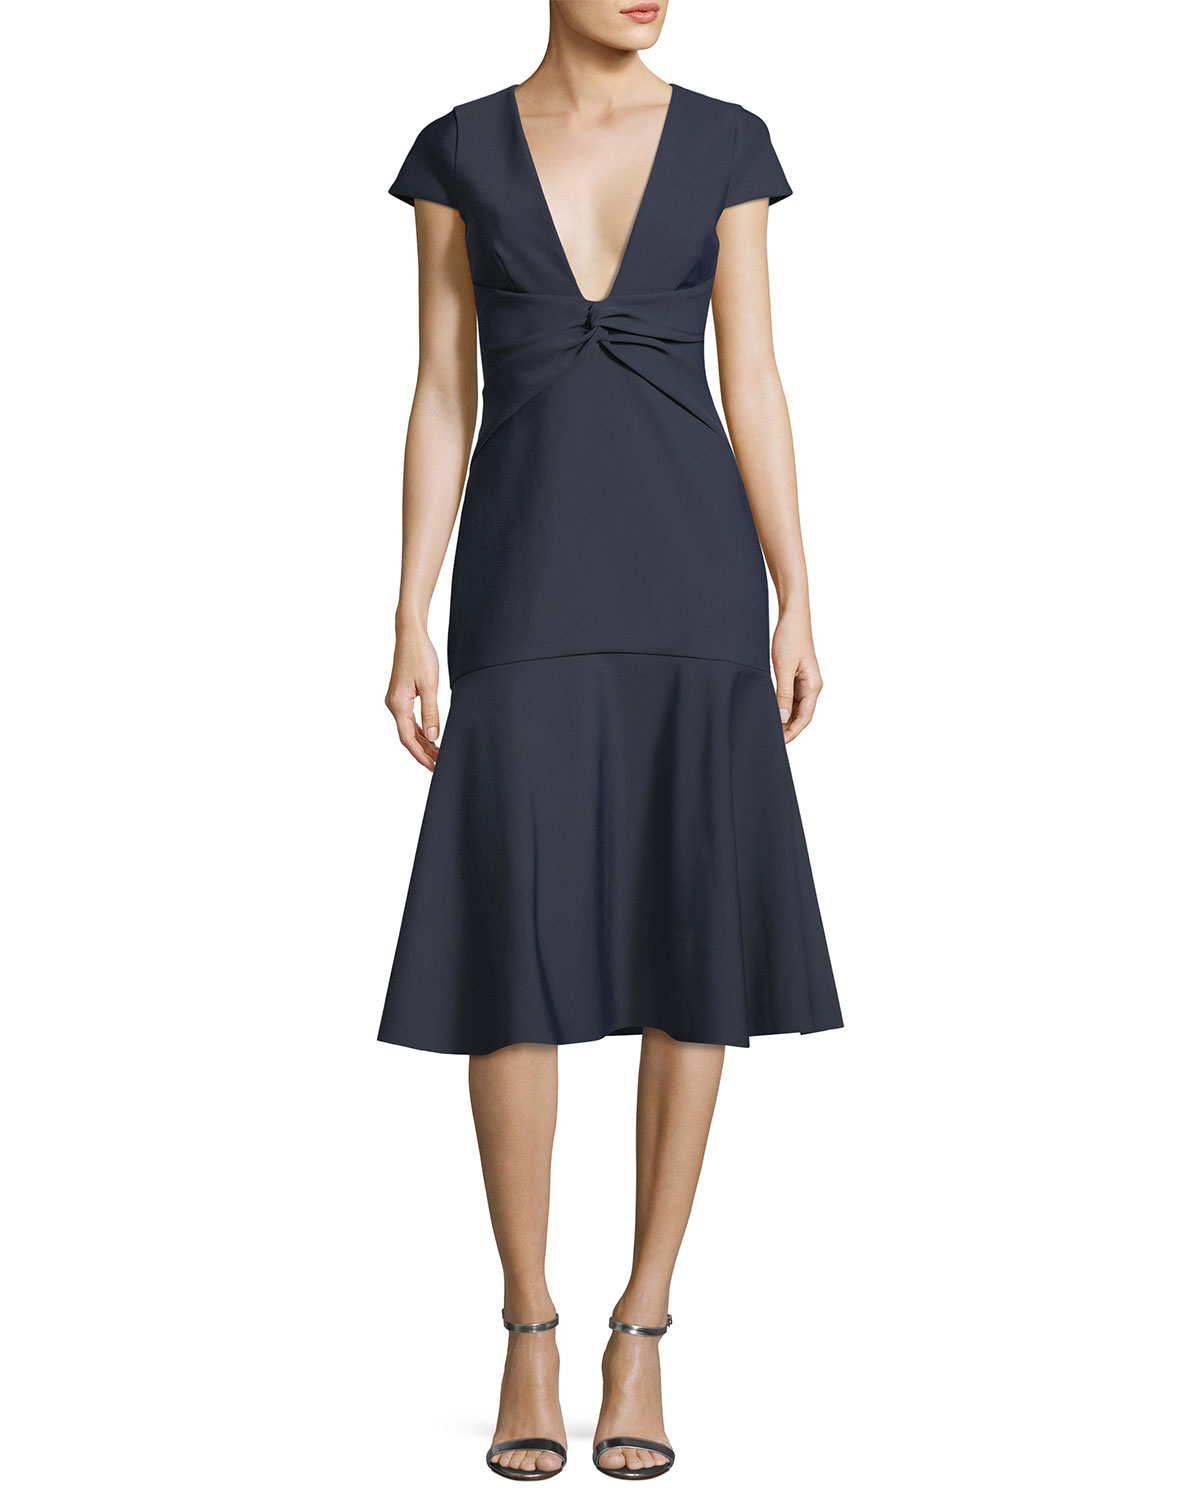 Bella Short-Sleeve Plunging V-Neck Tech Stretch Cocktail Dress